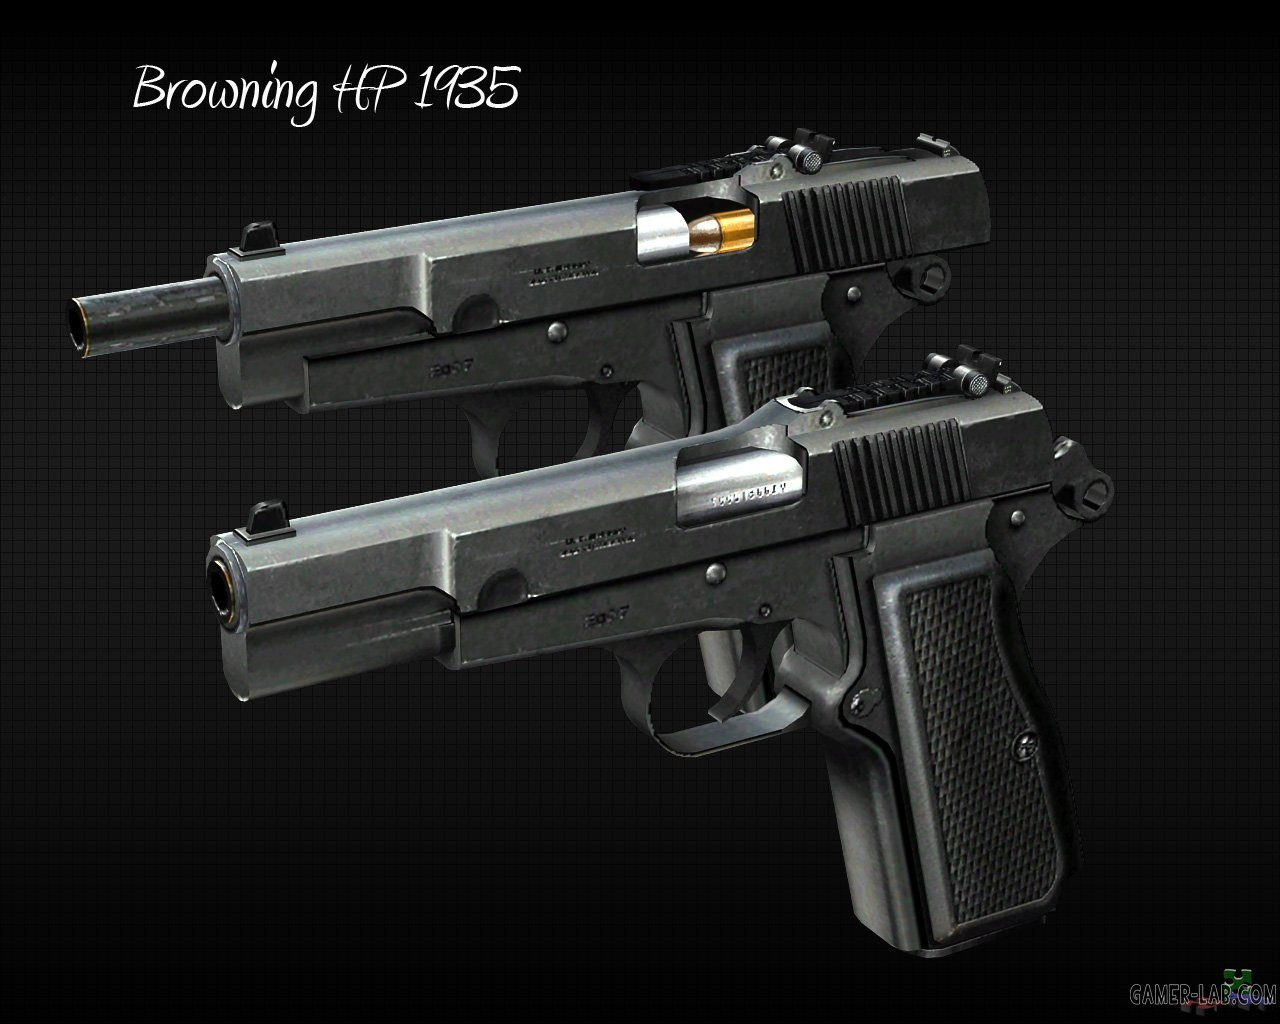 Browning HP 1935